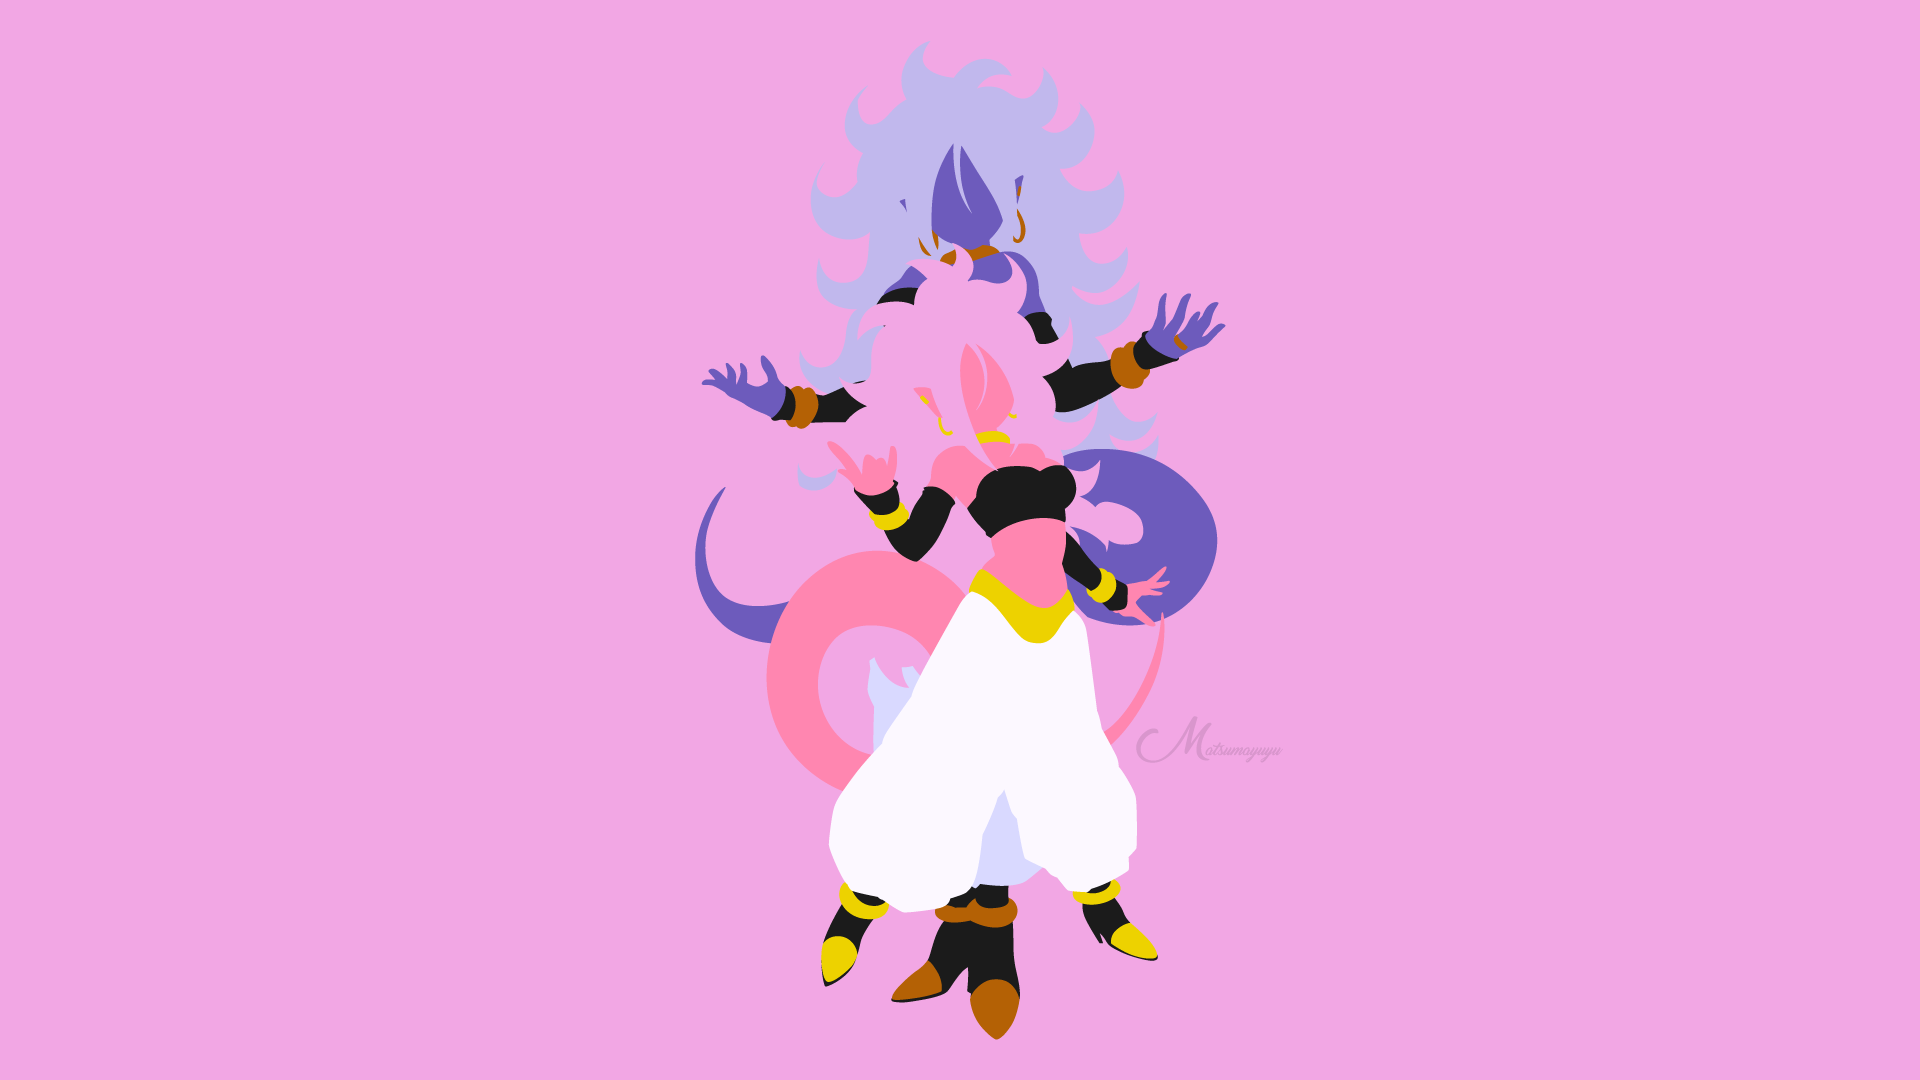 Majin Android 21 From Dragon Ball Fighterz Hd Wallpaper